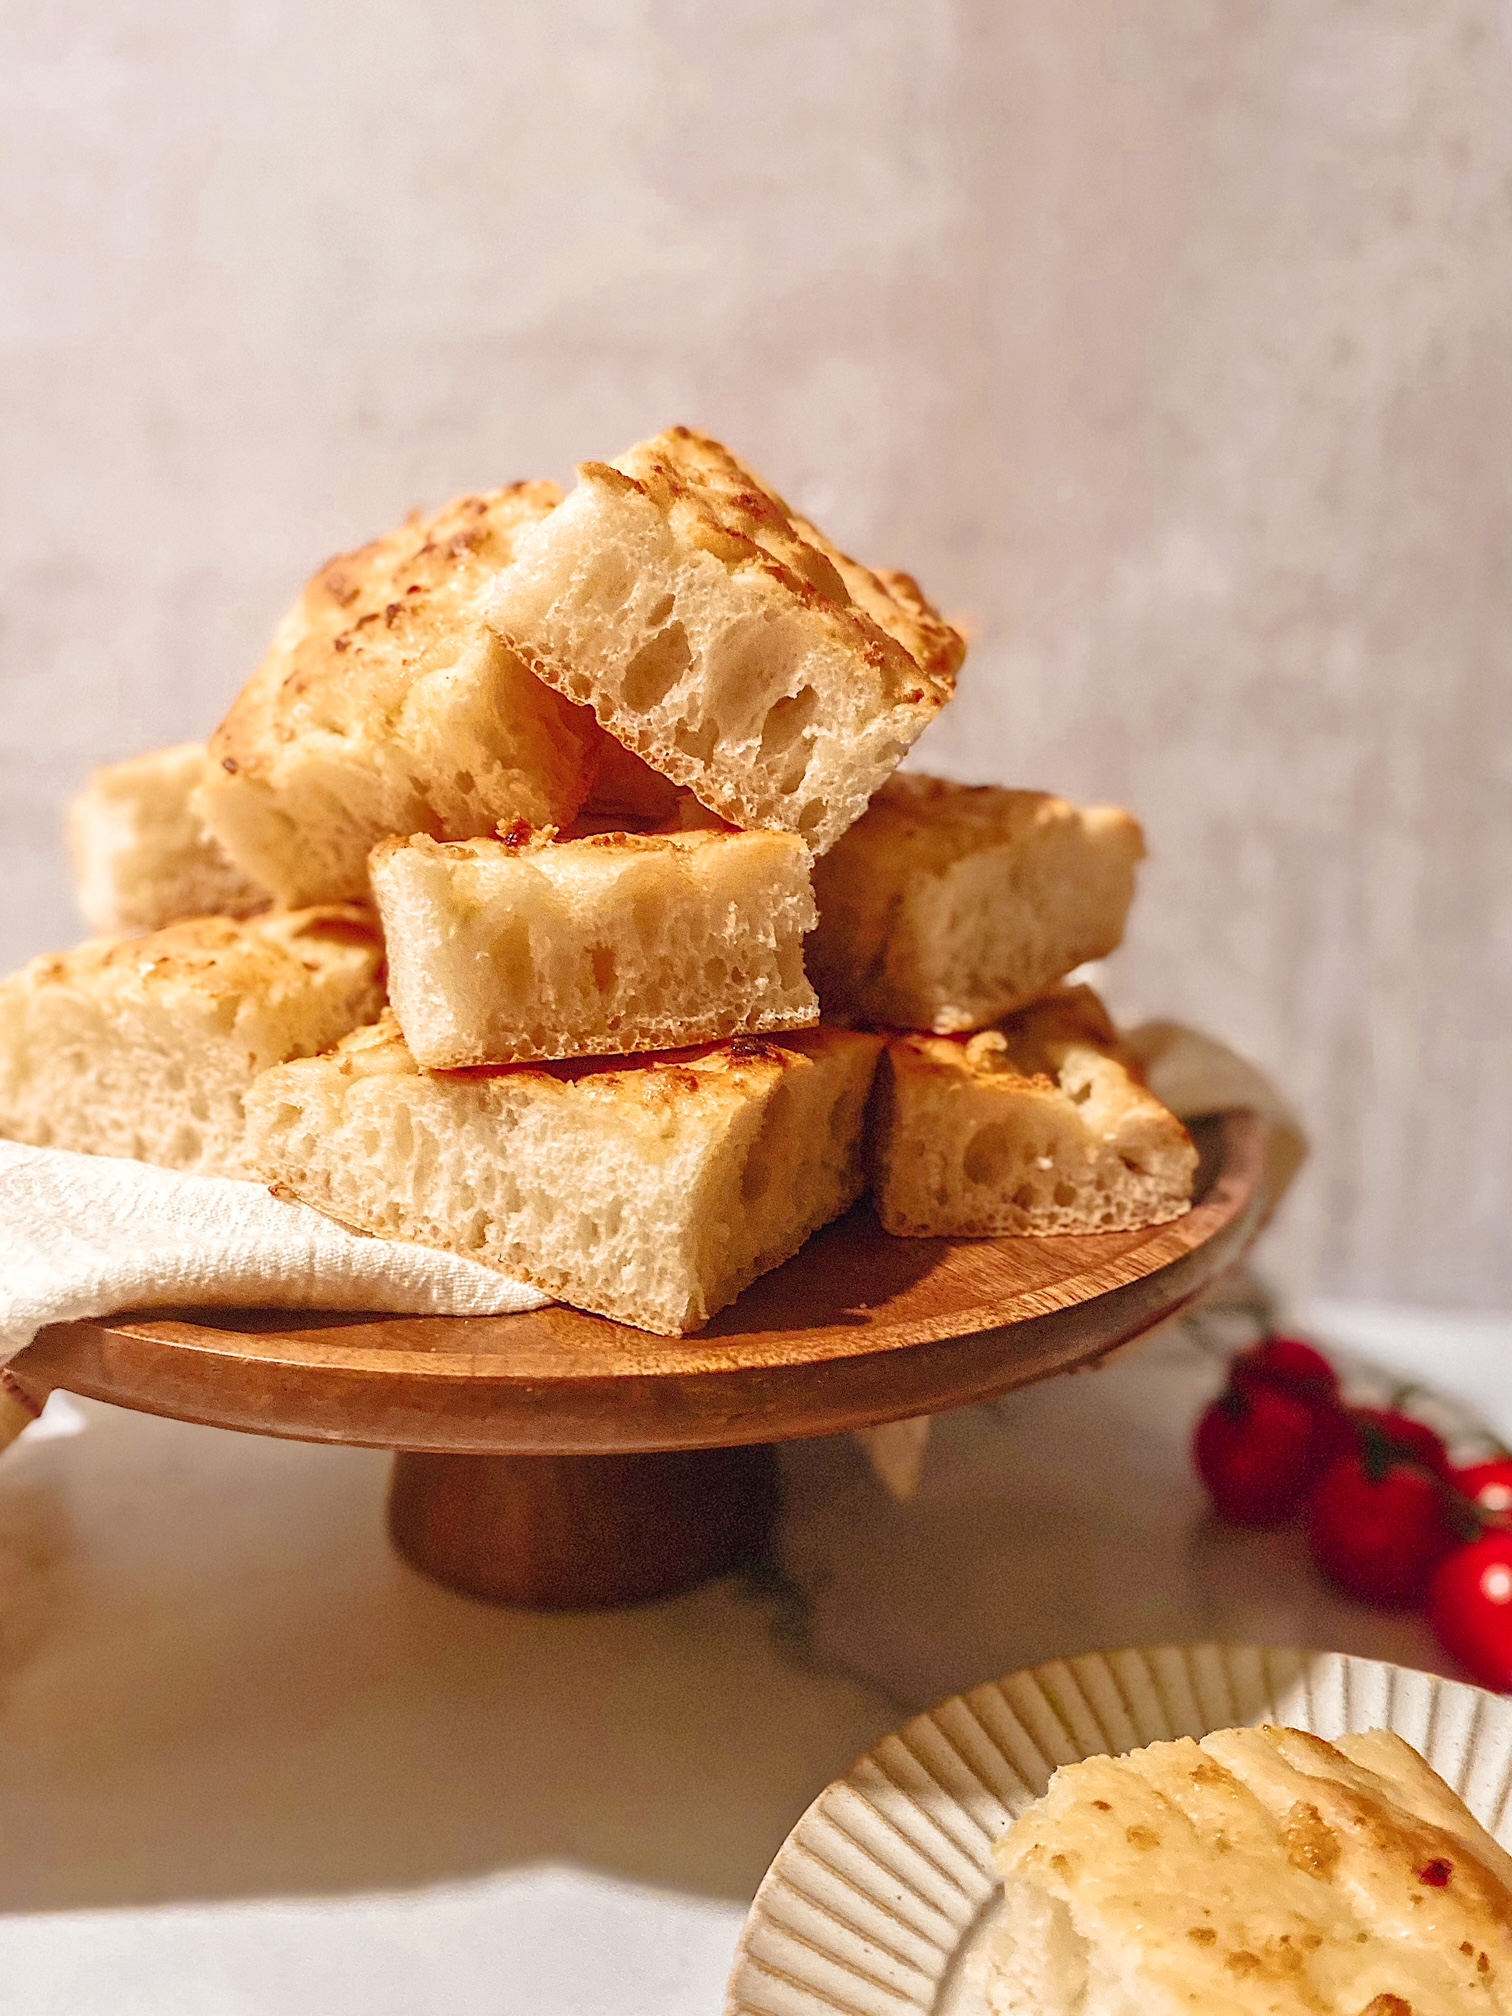 A wooden plate of garlic topped Lebanese talami bread.